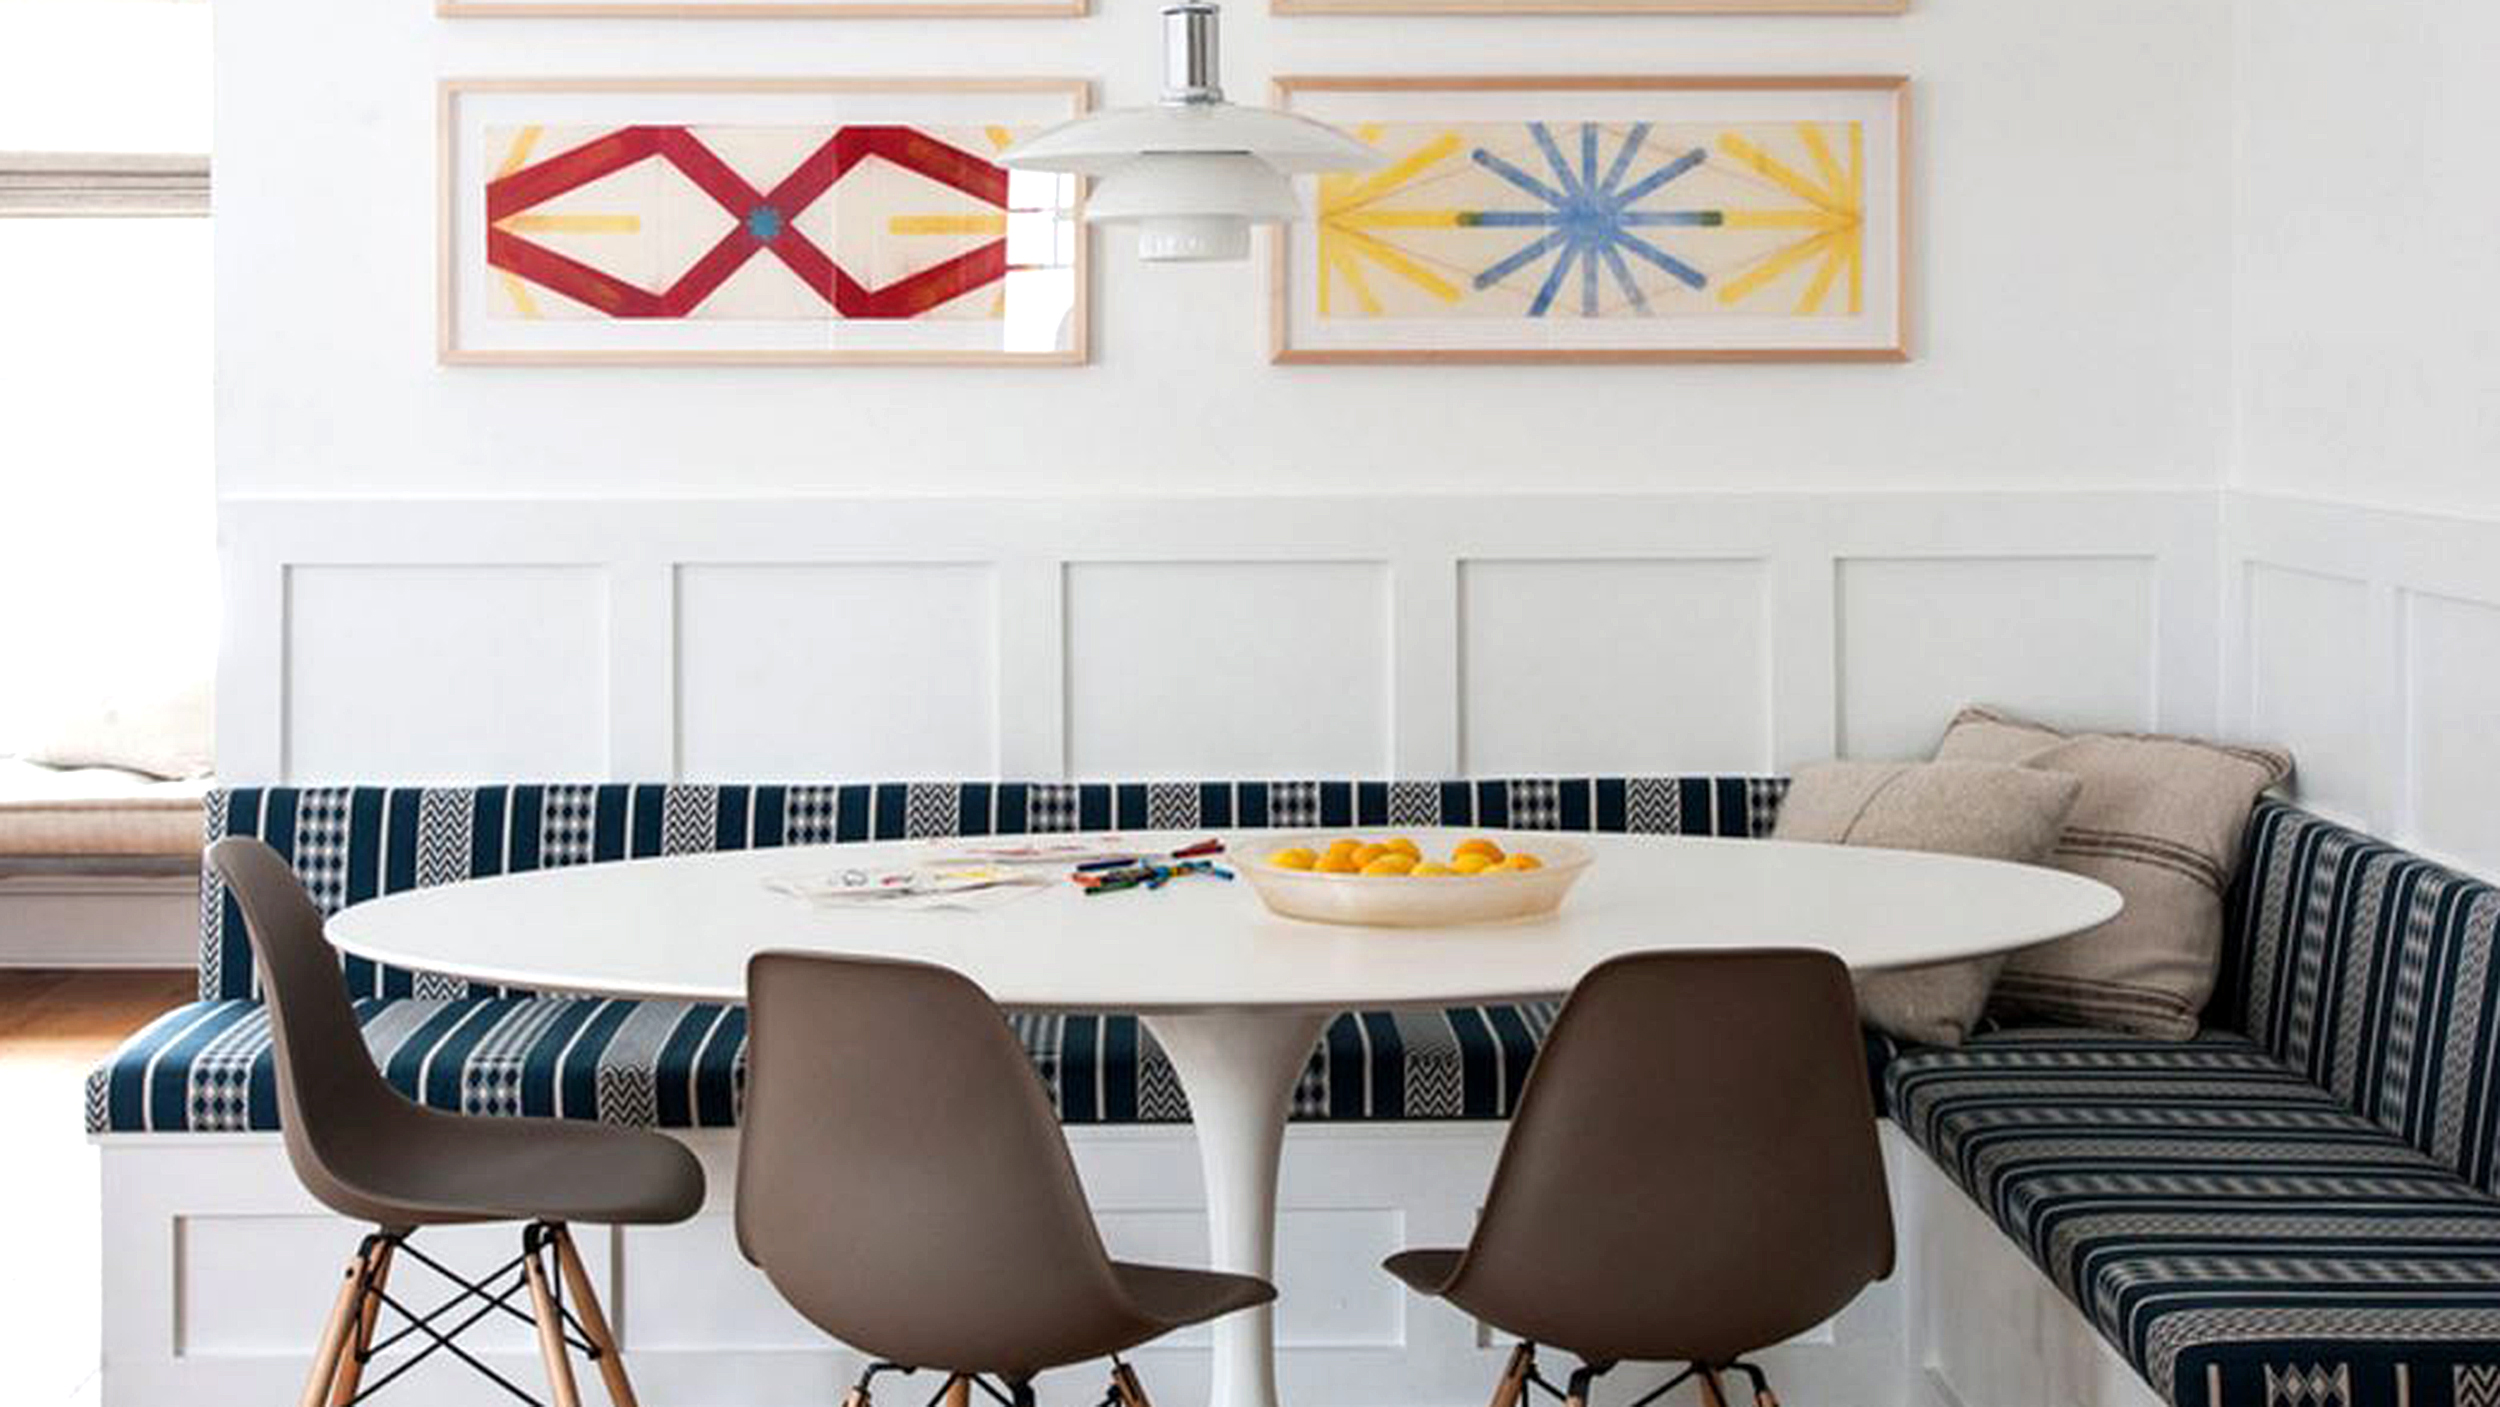 Add a banquette for an instant dining area in your kitchen